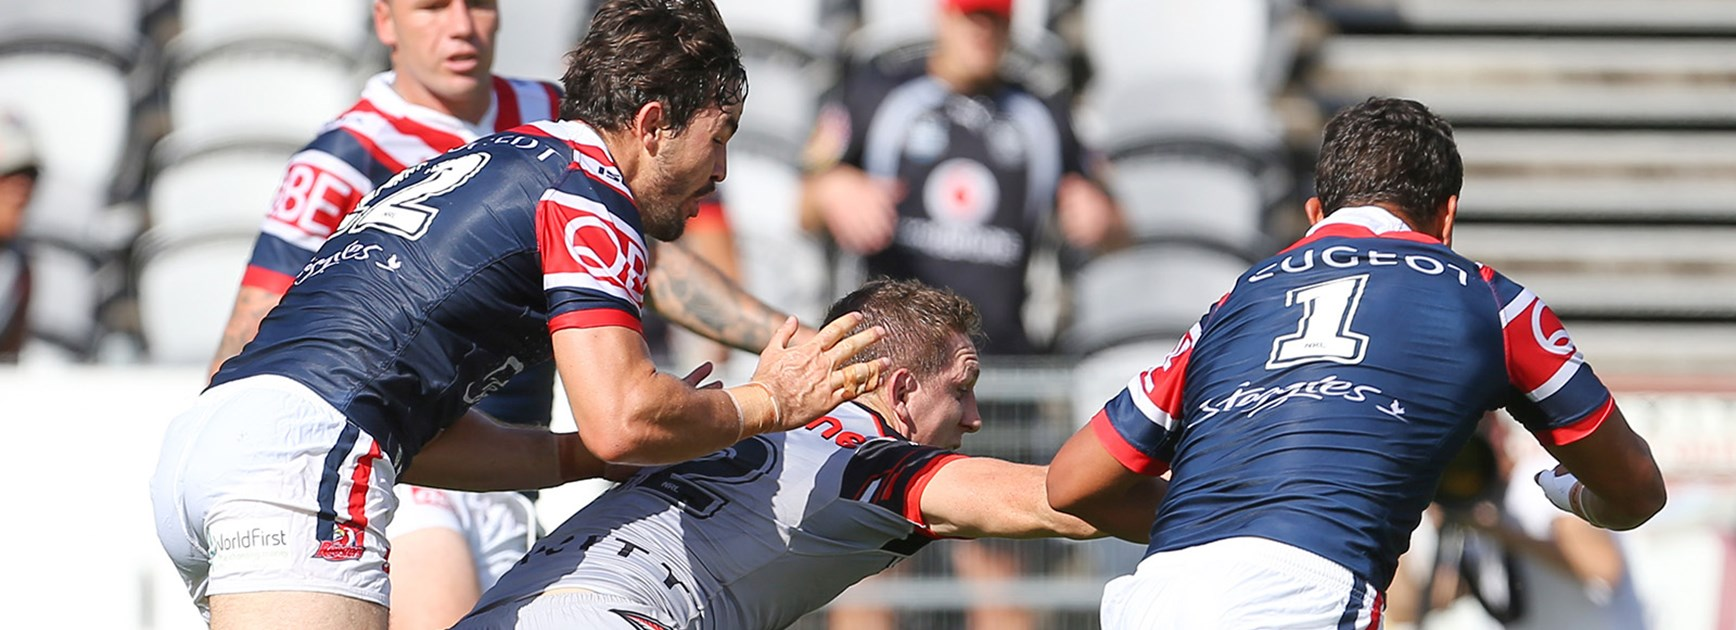 Ryan Hoffman is held back by the Roosters defence while trying to score a try in Round 5.